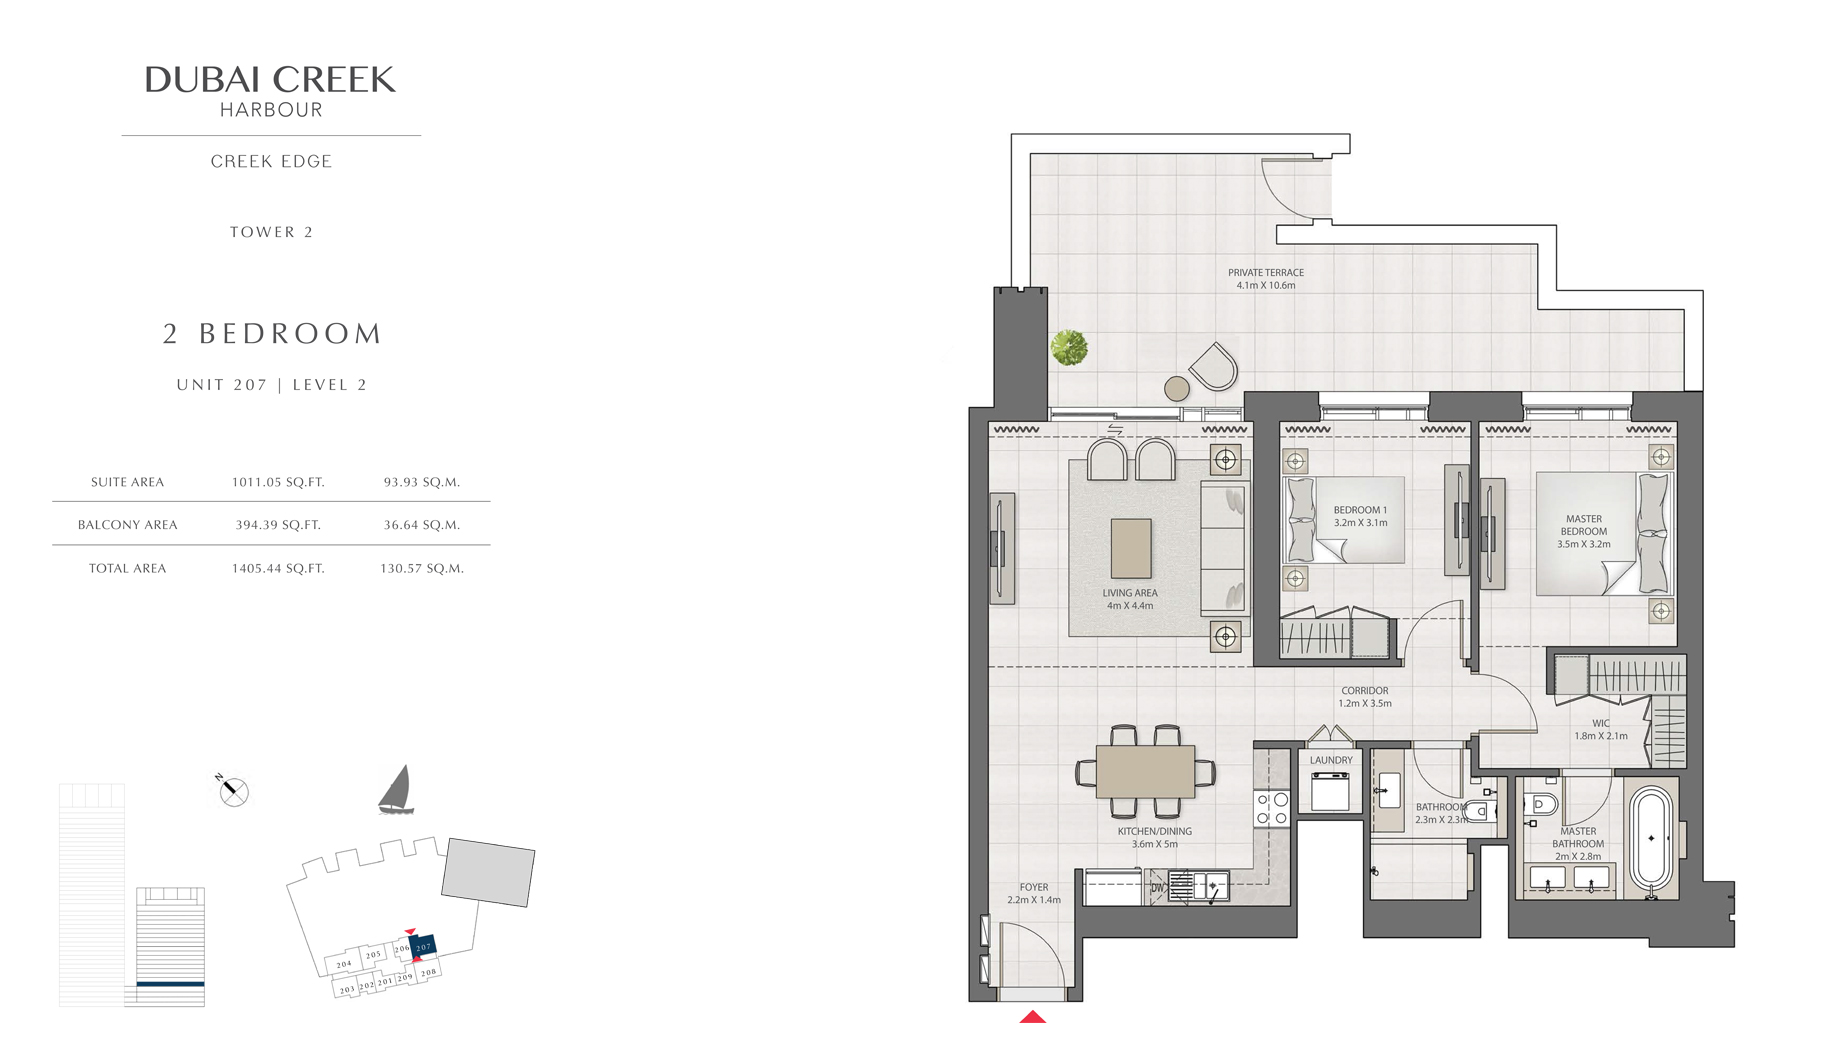 2 Bedroom Tower 2 Unit 207 Level 2 Size 1405 sq.ft